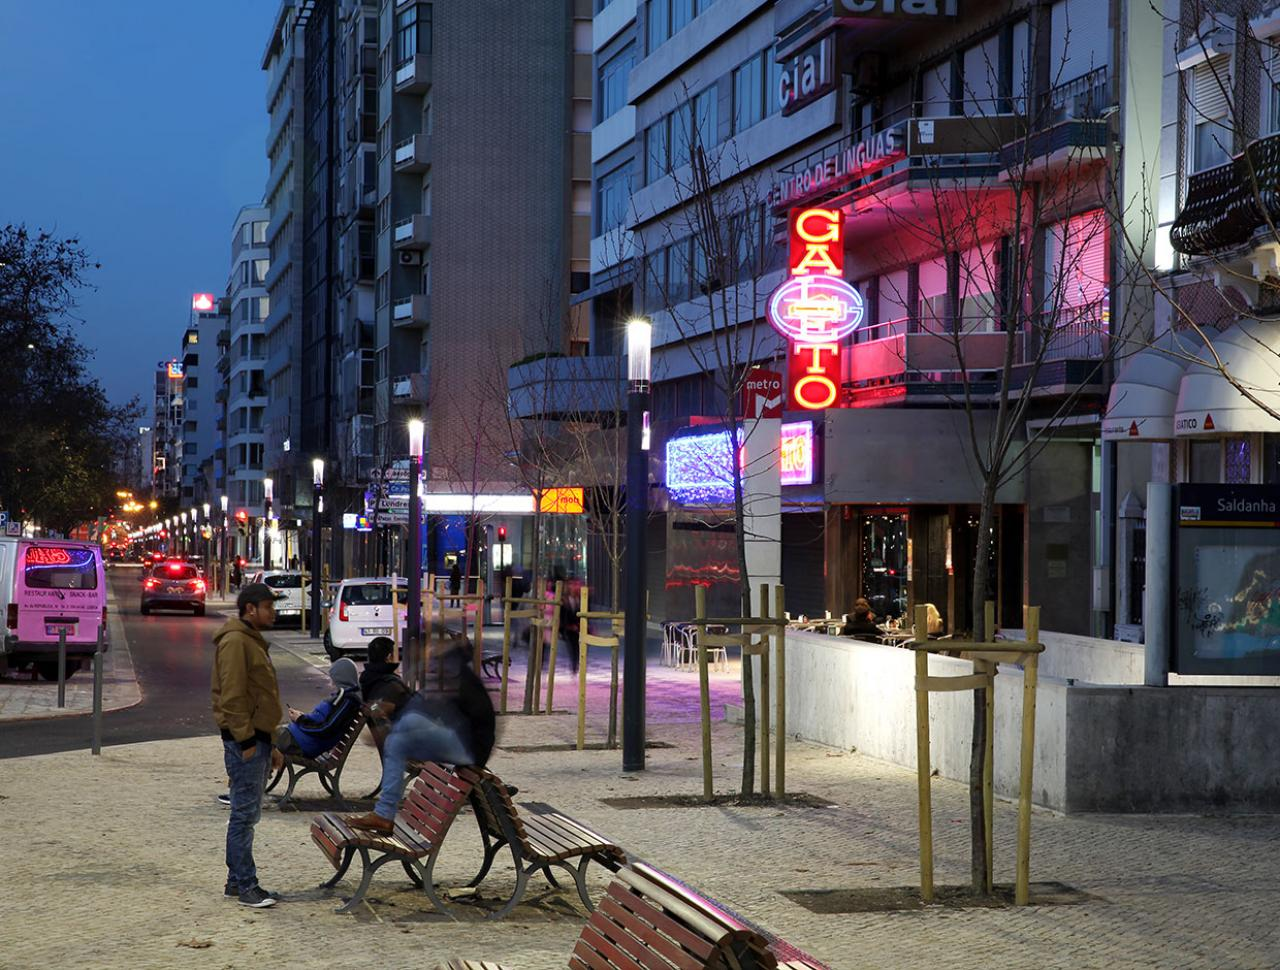 LED lighting systems can help improve the mobile experience in cities